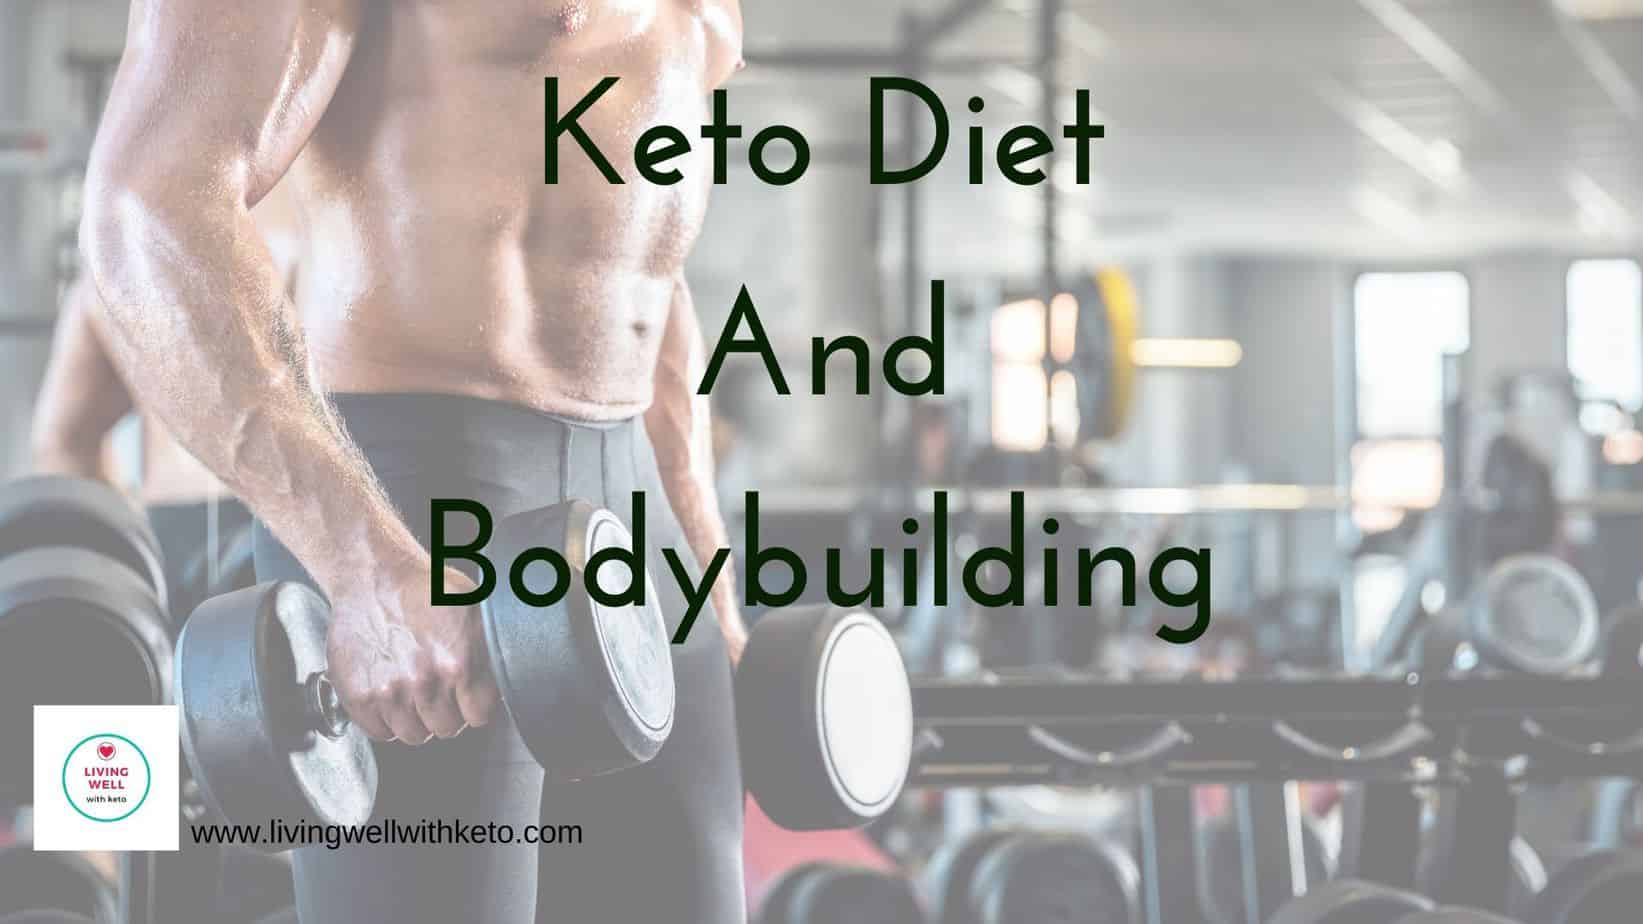 Keto Diet And Bodybuilding